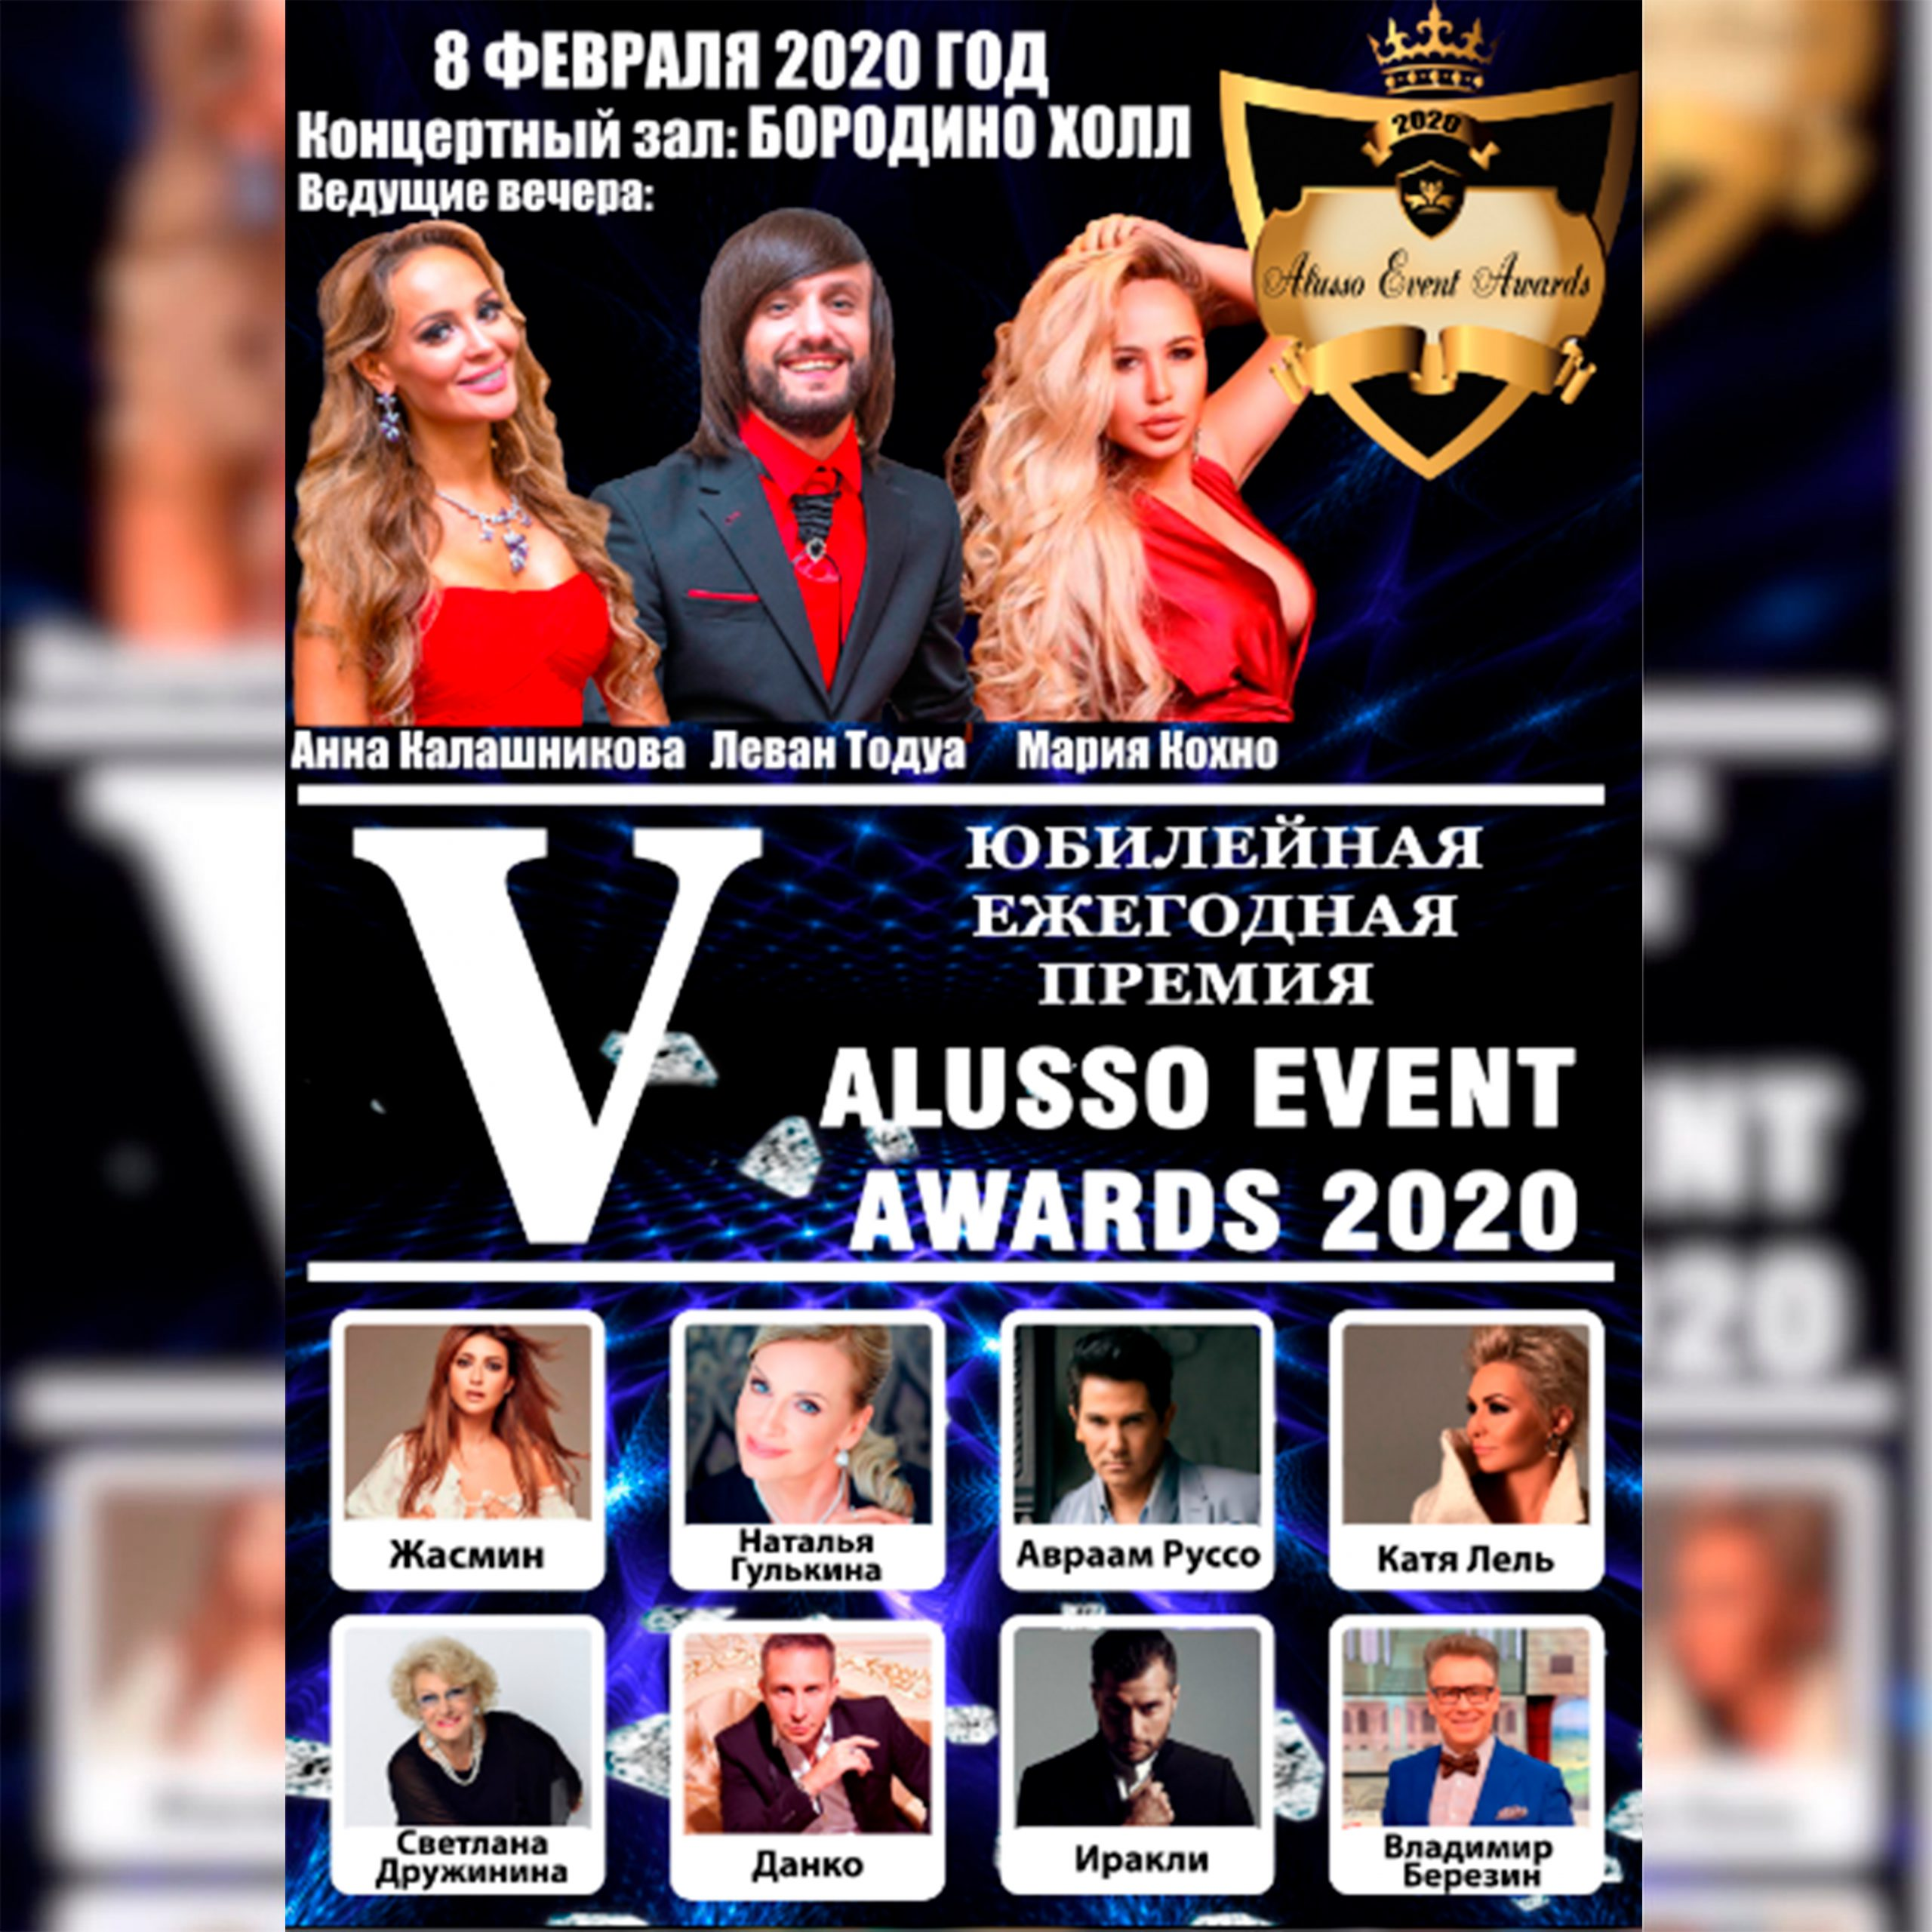 Премия ALUSSO EVENT AWARDS 2020